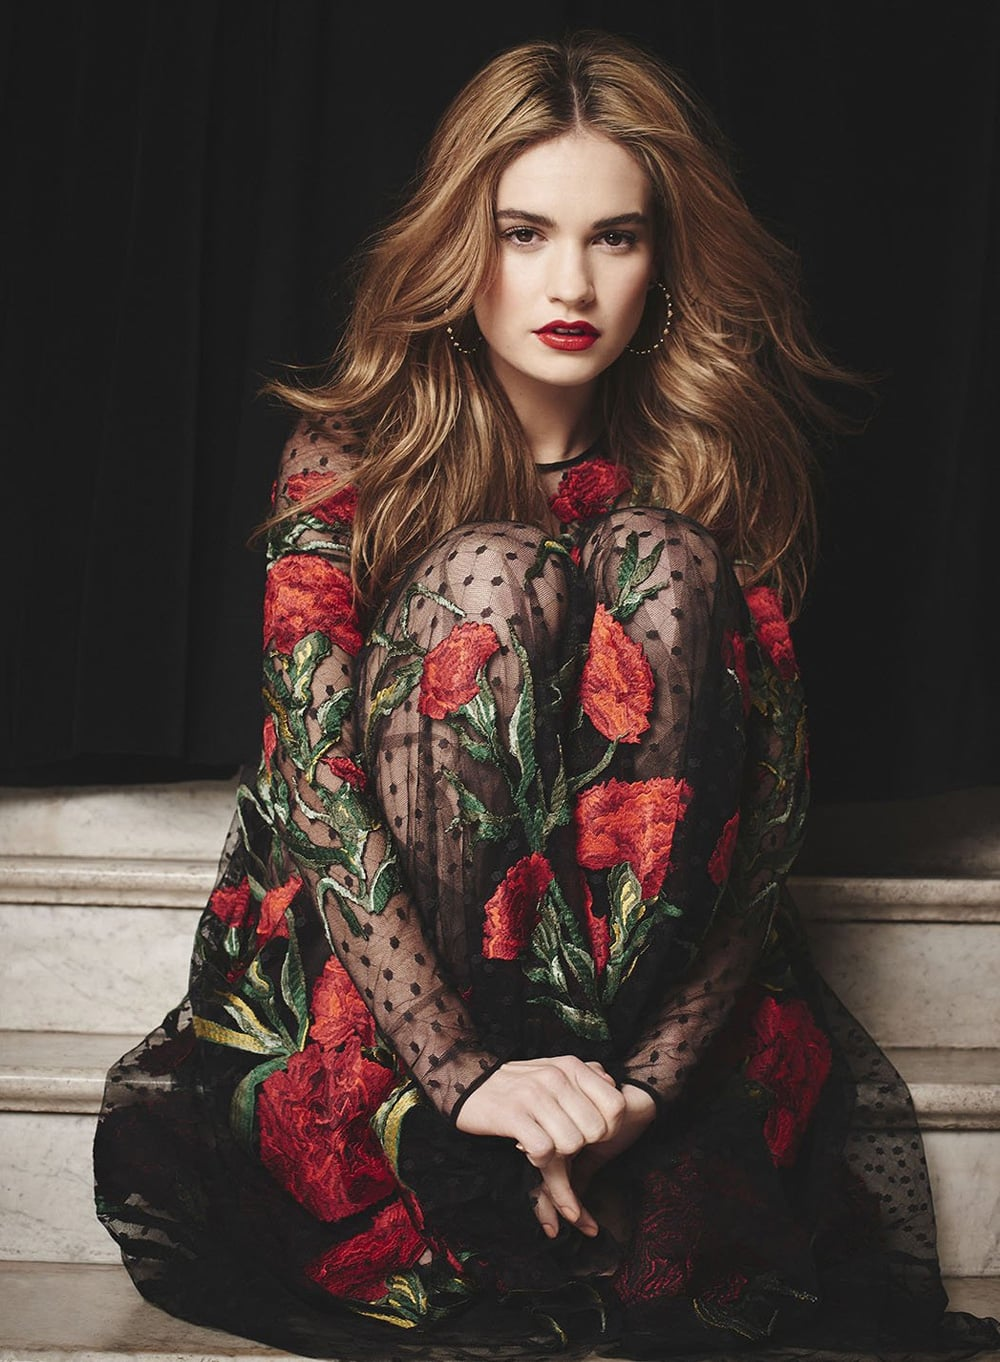 Iphone 6 Car Wallpaper Hd Lily James Wallpapers Hd Free Download